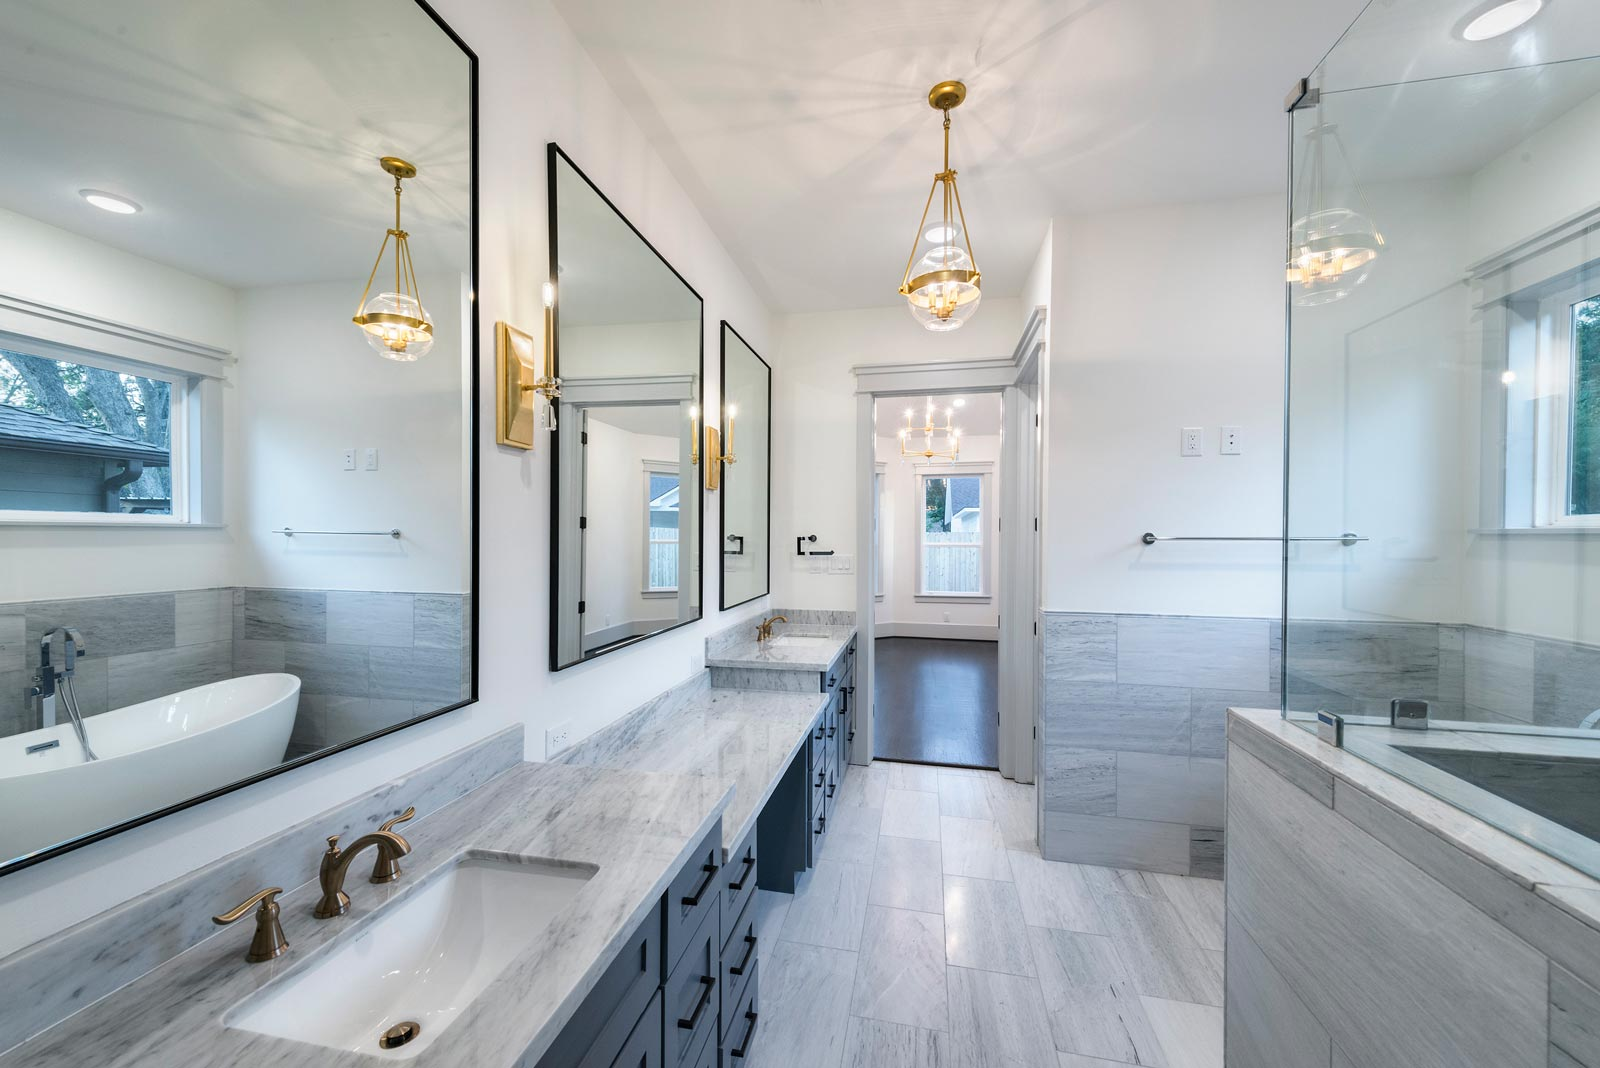 Houston-Homebuilder-Custom-Homebuilder-Central-Houston-Homebuilder-Oak-Forest-Homebuilder-Carrara-Marble-Counters-Gray-Marble-Tile-Steel-Frame-Mirrors-Gold-Sconces